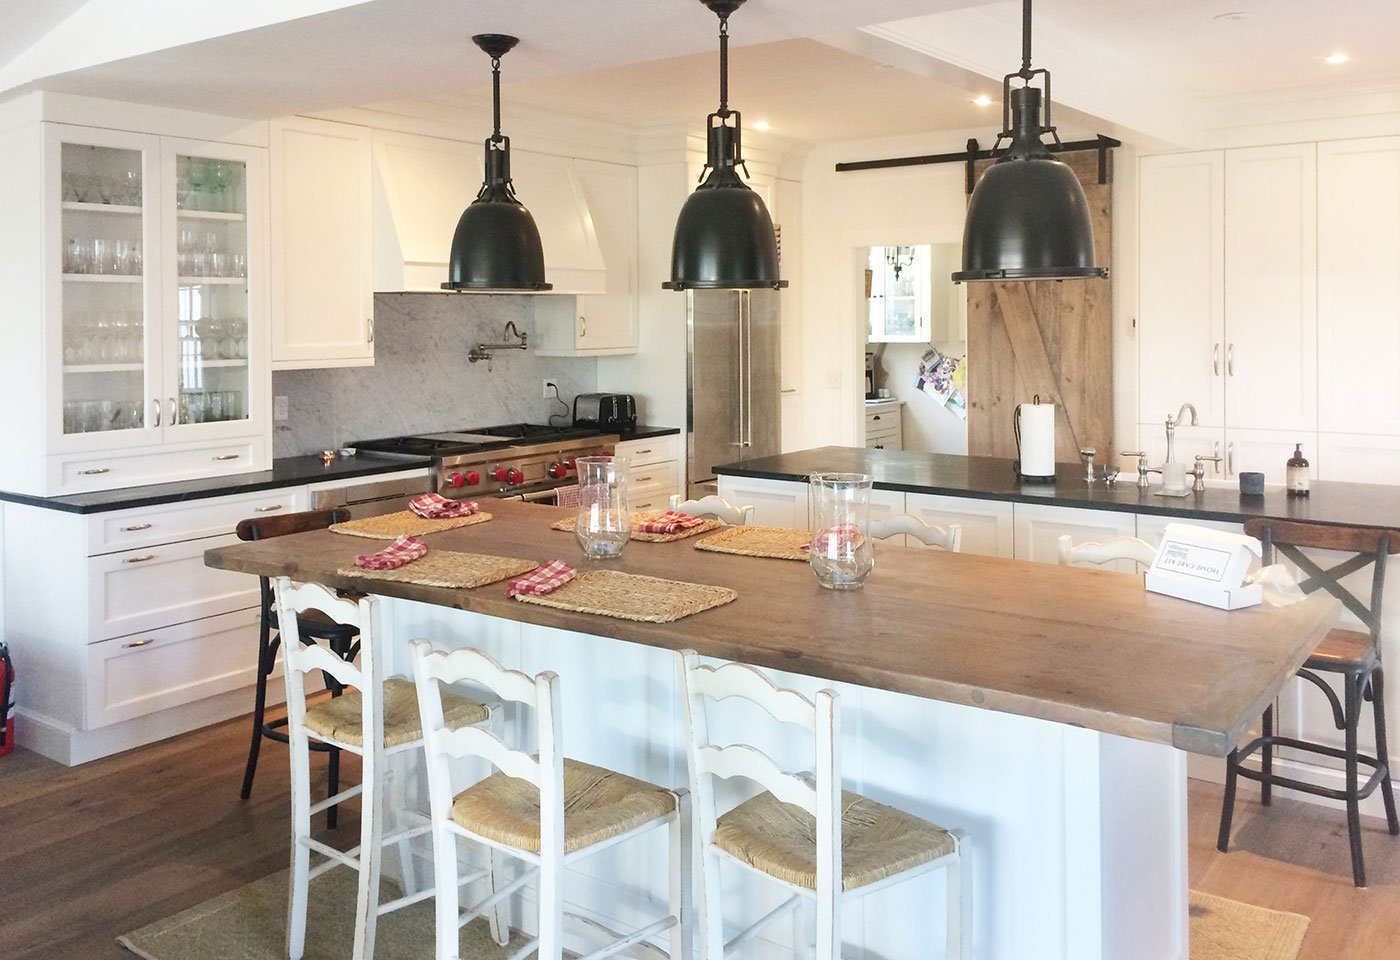 1 New addition - kitchen by home renovation, in-house design build firm in RI